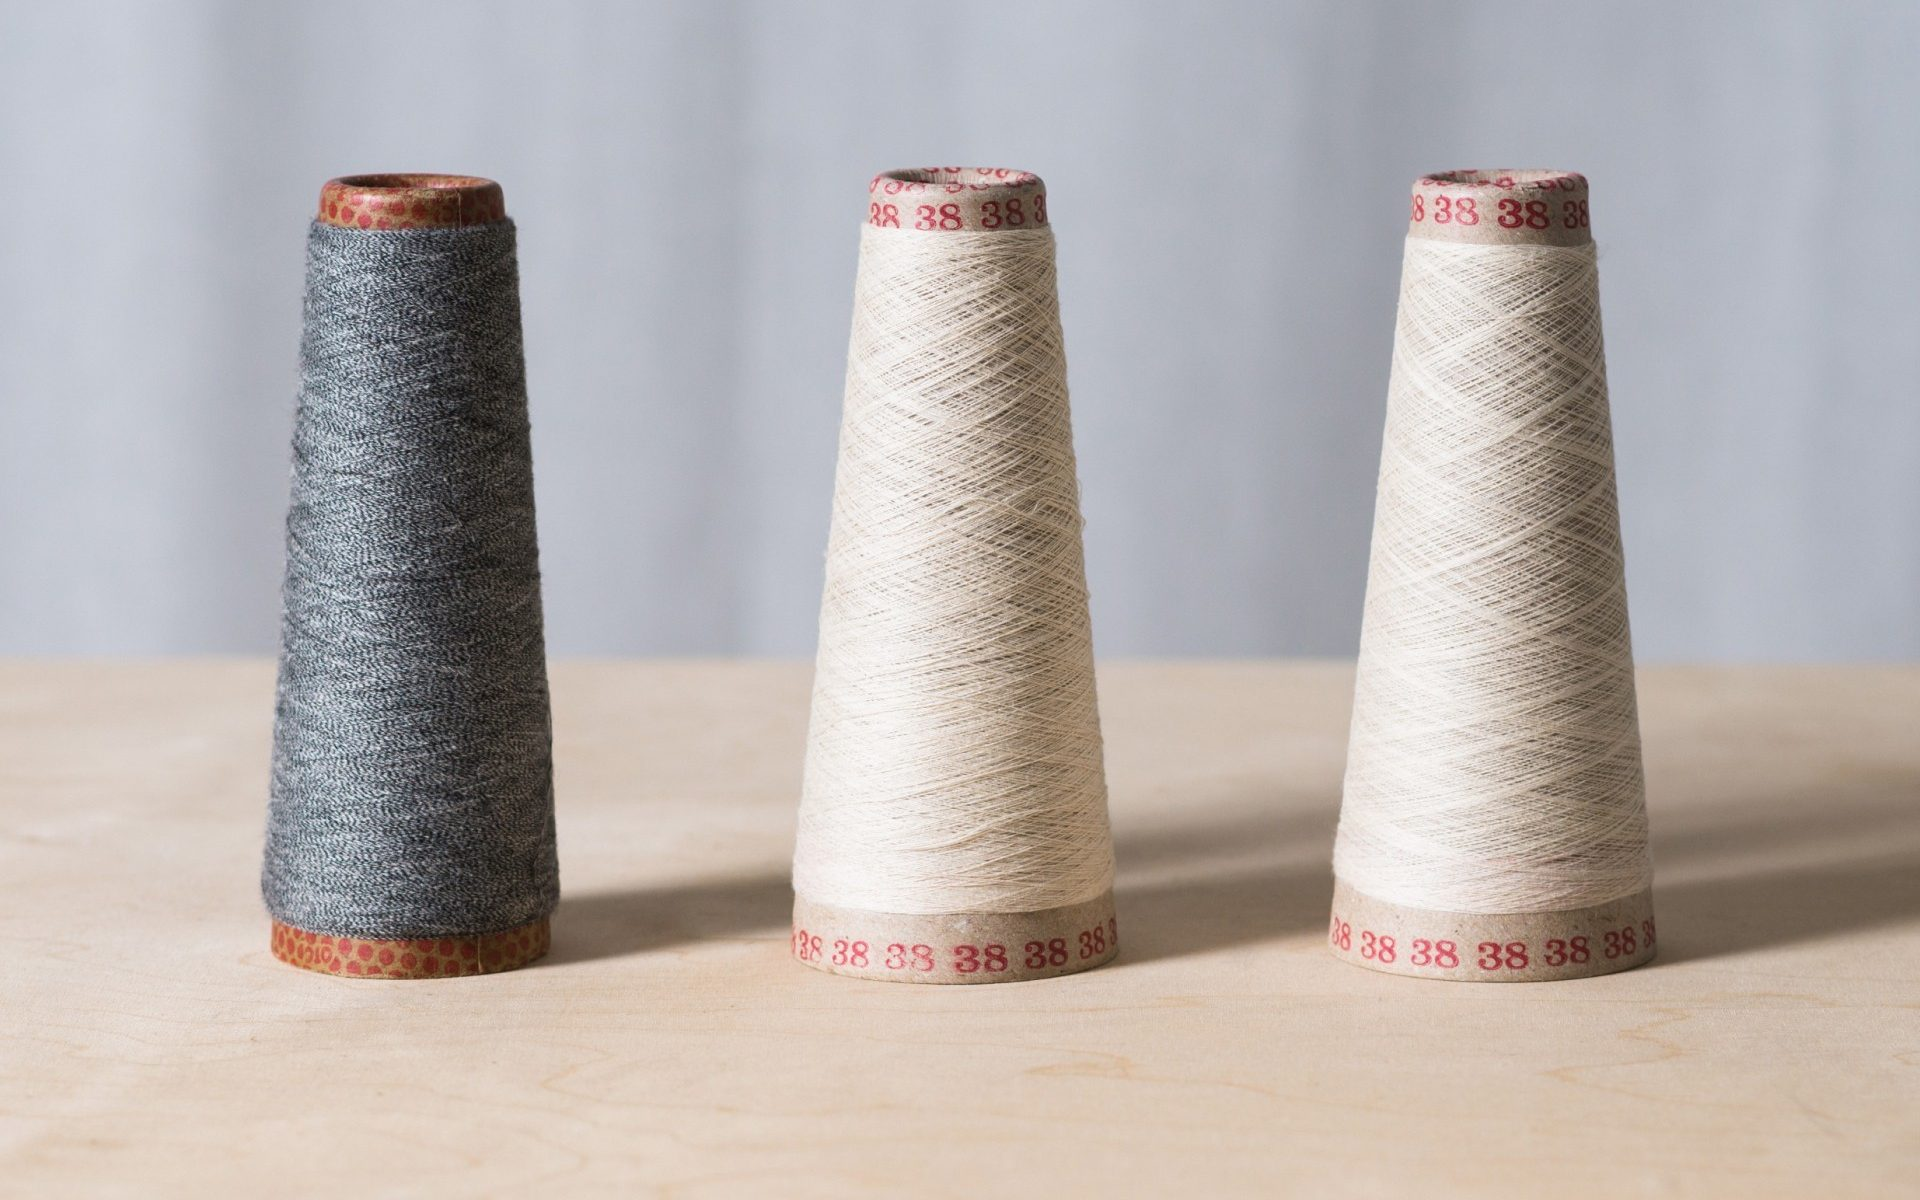 Spools of thread made from regenerated cotton fiber